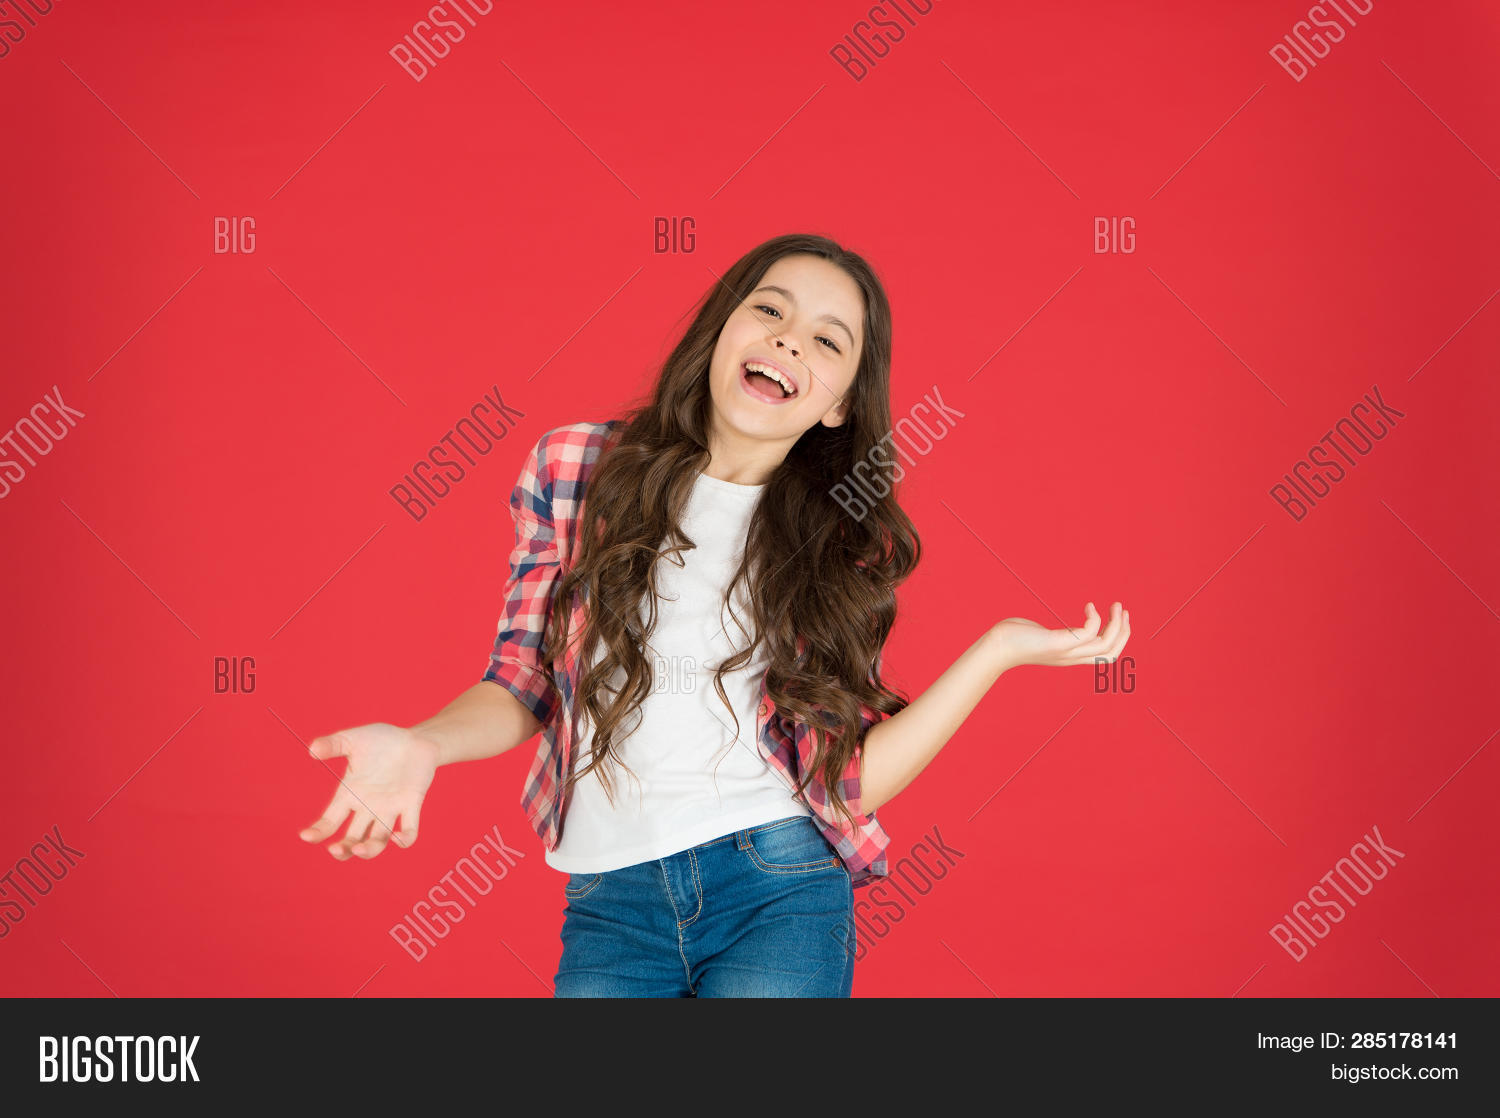 adorable,baby,background,beauty,care,carefree,casual,charming,cheerful,child,childhood,childrens,come,curly,cute,day,do,easy,enjoy,expression,face,feeling,fun,girl,hair,hairstyle,happiness,happy,have,i,international,it,joyful,kid,know,laugh,lets,little,long,not,pretty,red,relax,salon,small,smile,take